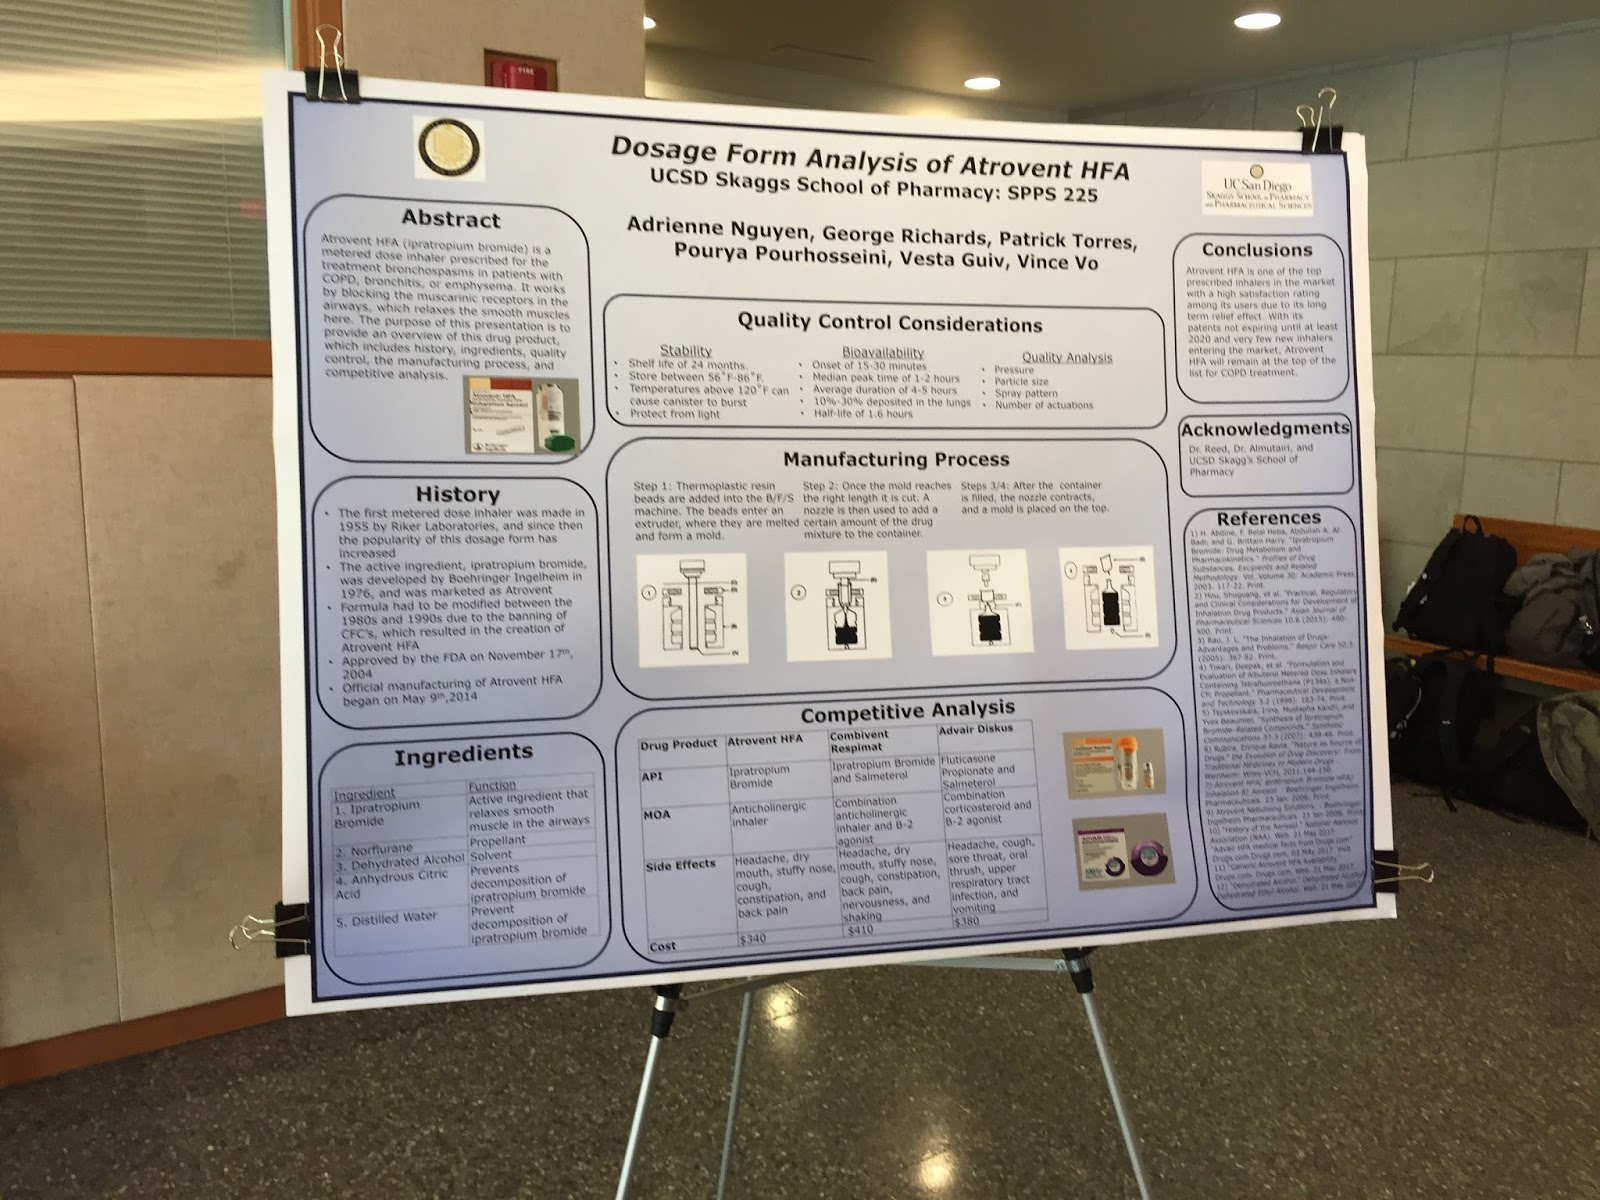 research poster presentation_adrienne nguyen_UCSD student pharmacist_dosage forms